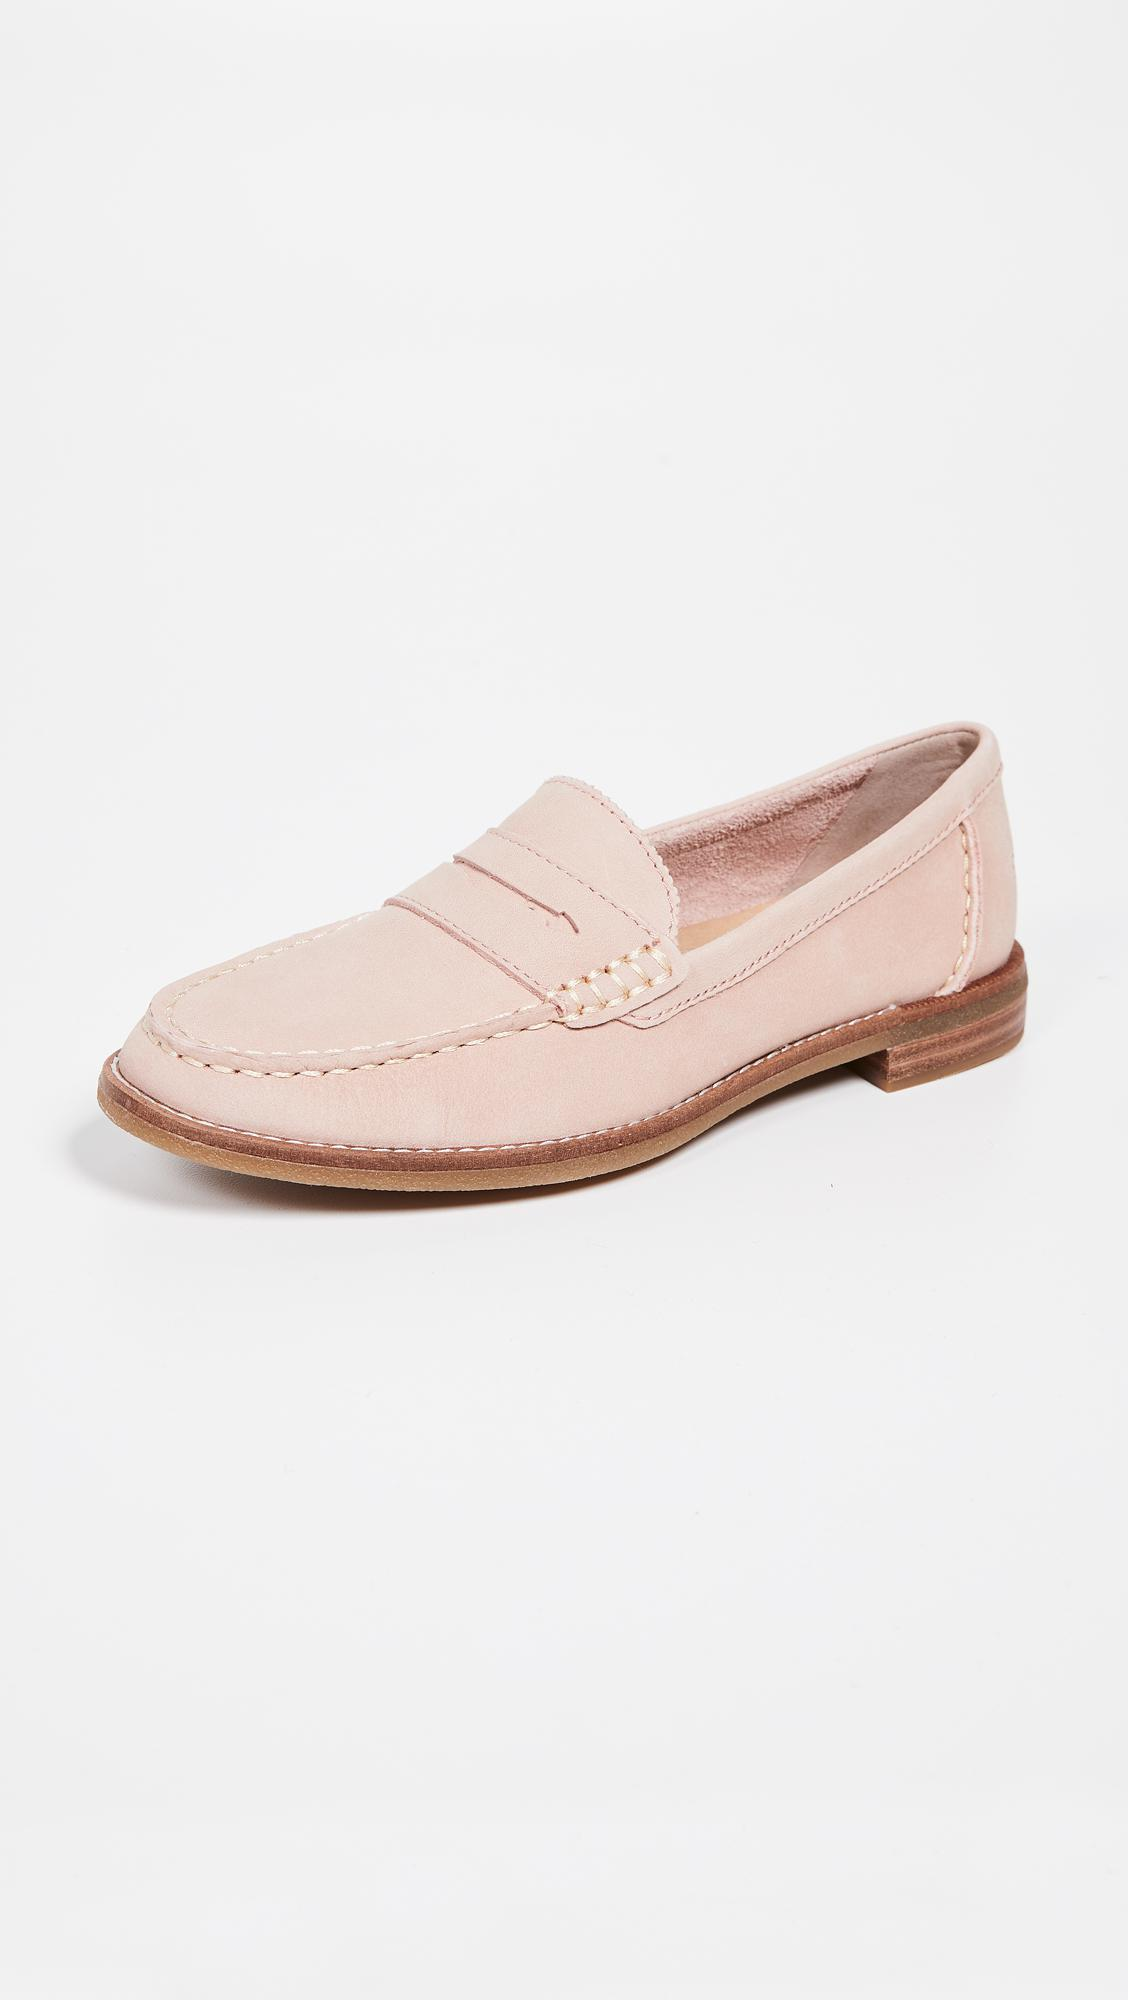 ea9c1c91ef4 Lyst - Sperry Top-Sider Seaport Penny Loafers in Pink